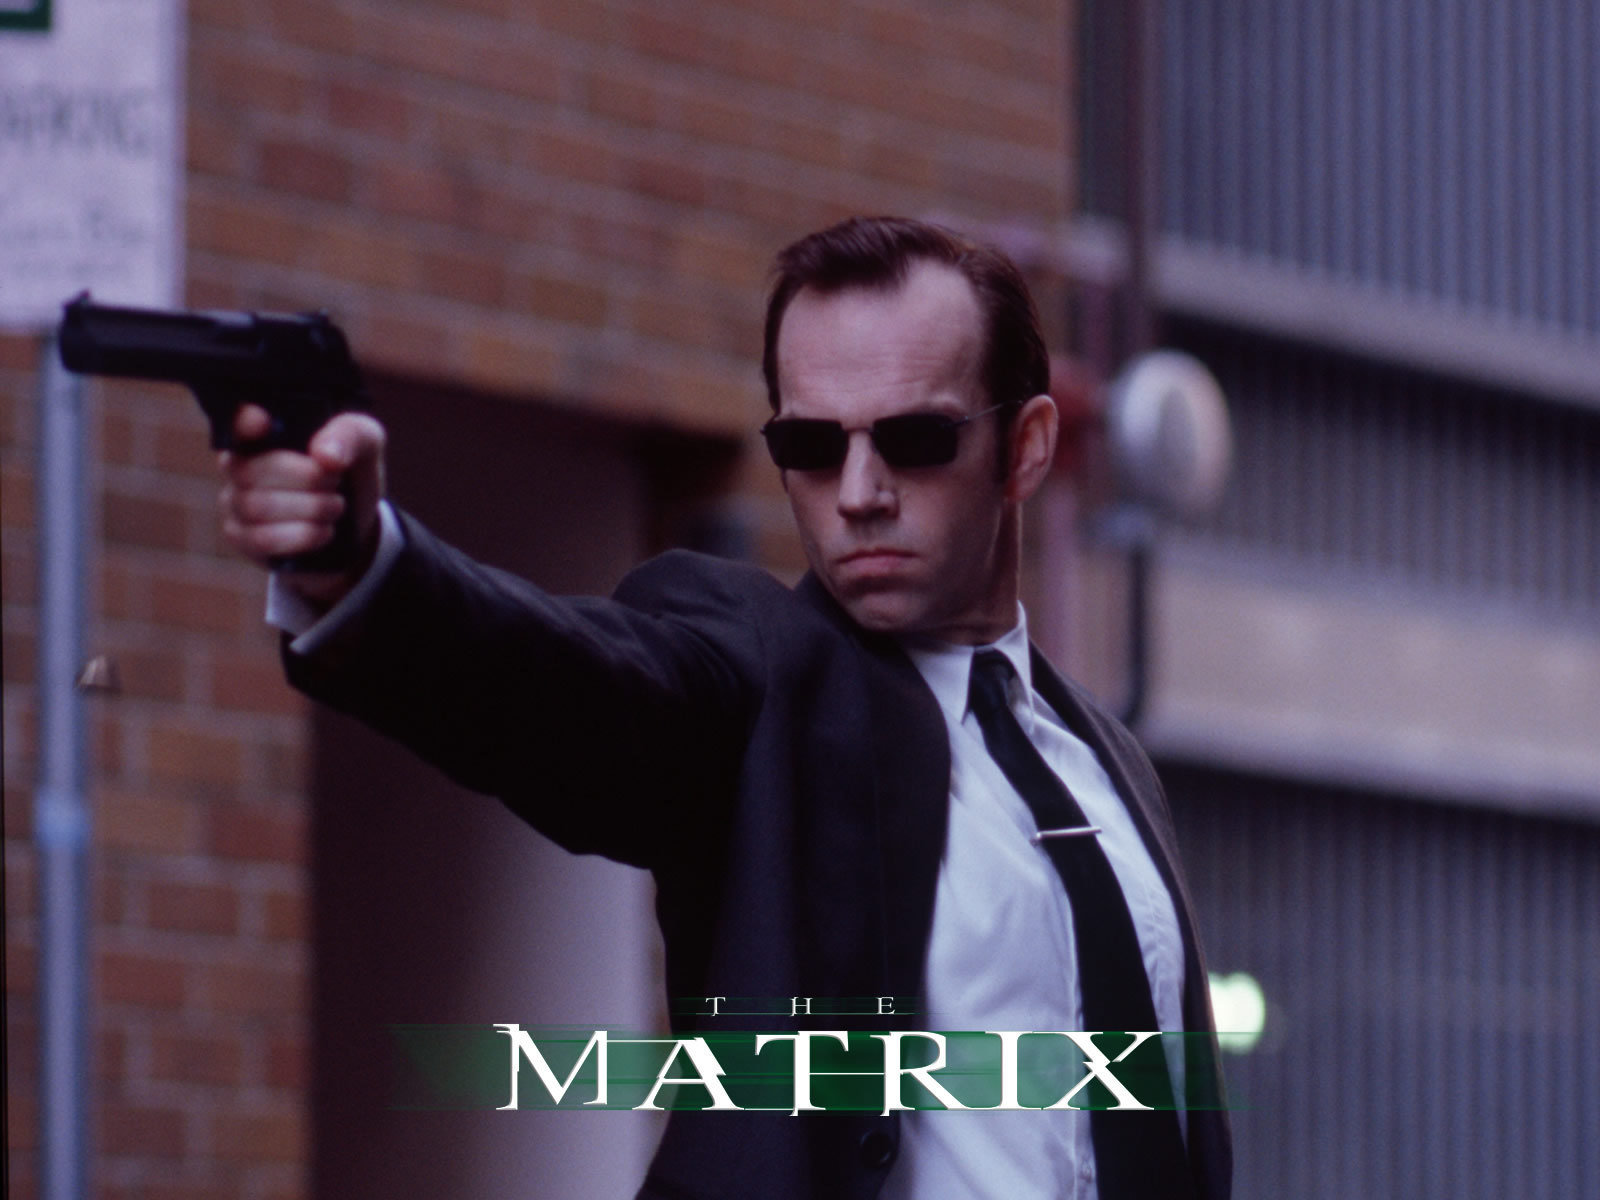 The Matrix Agent Smith Wallpaper the matrix 2528119 1600 1200 Bespoke Suits for Halloween